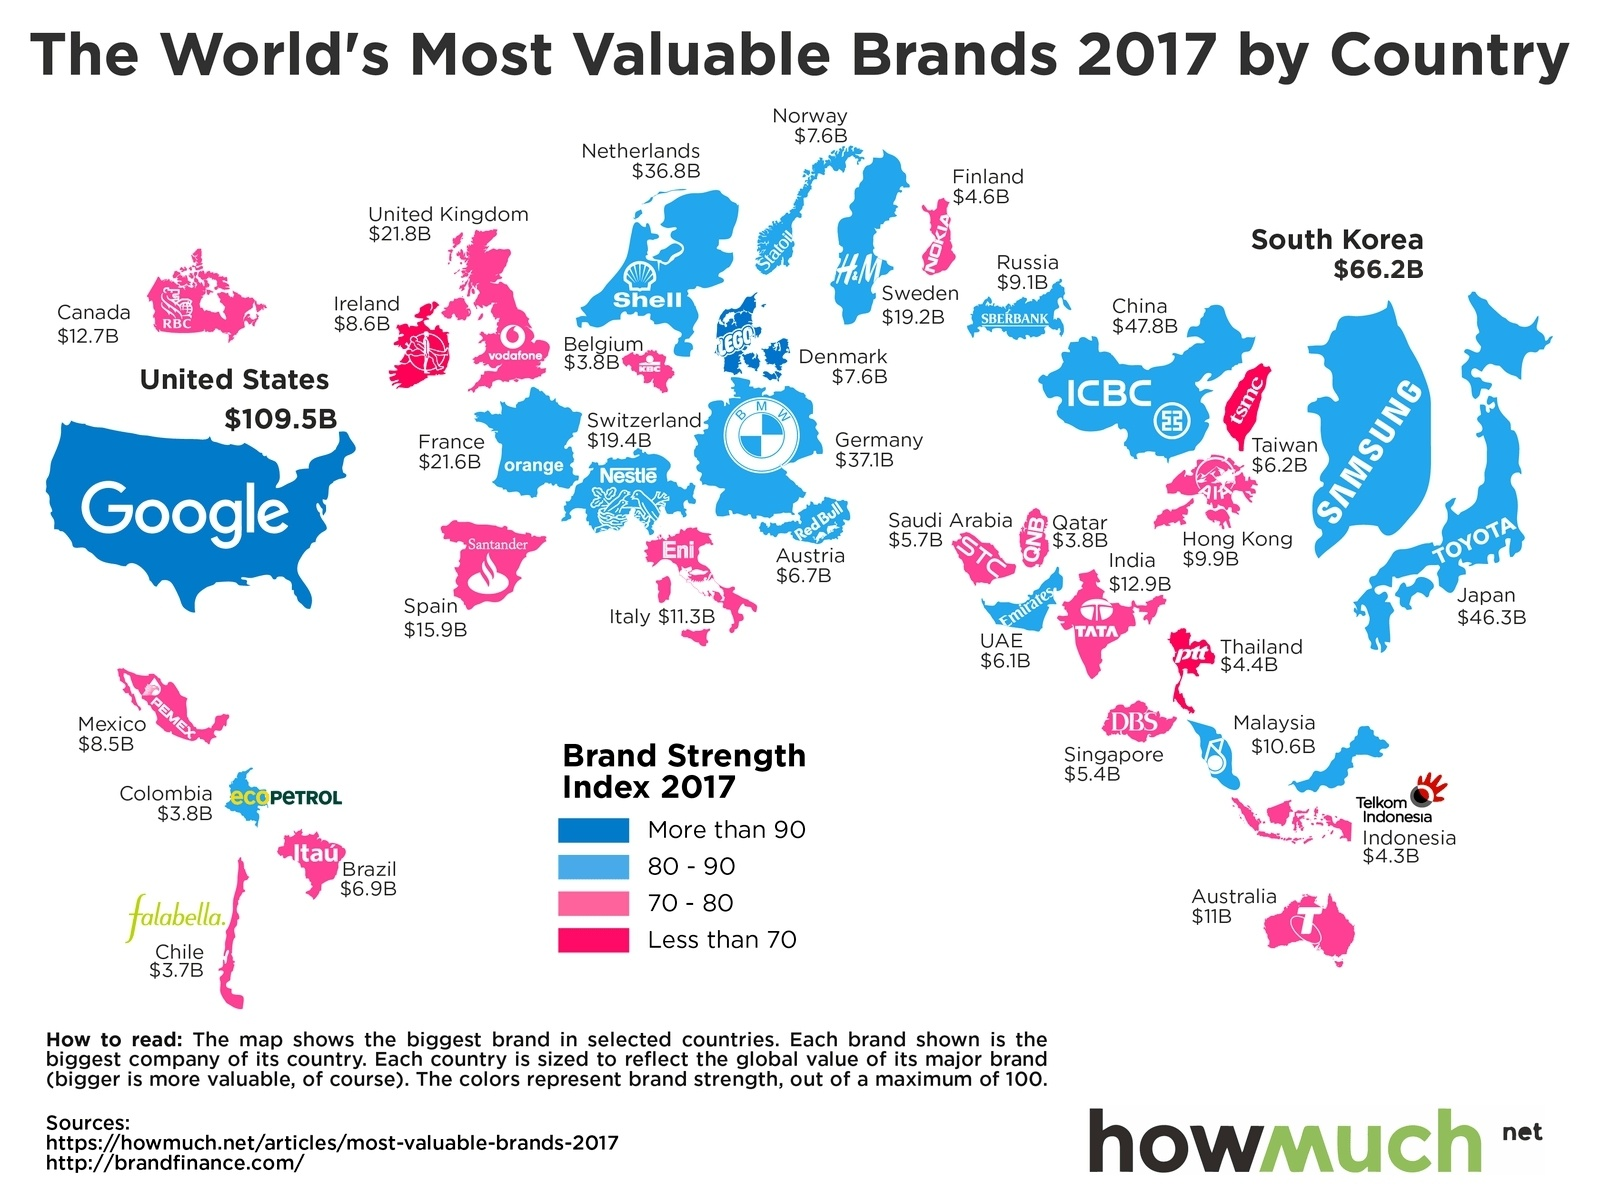 The World's Most Valuable Brands 2017 by Country